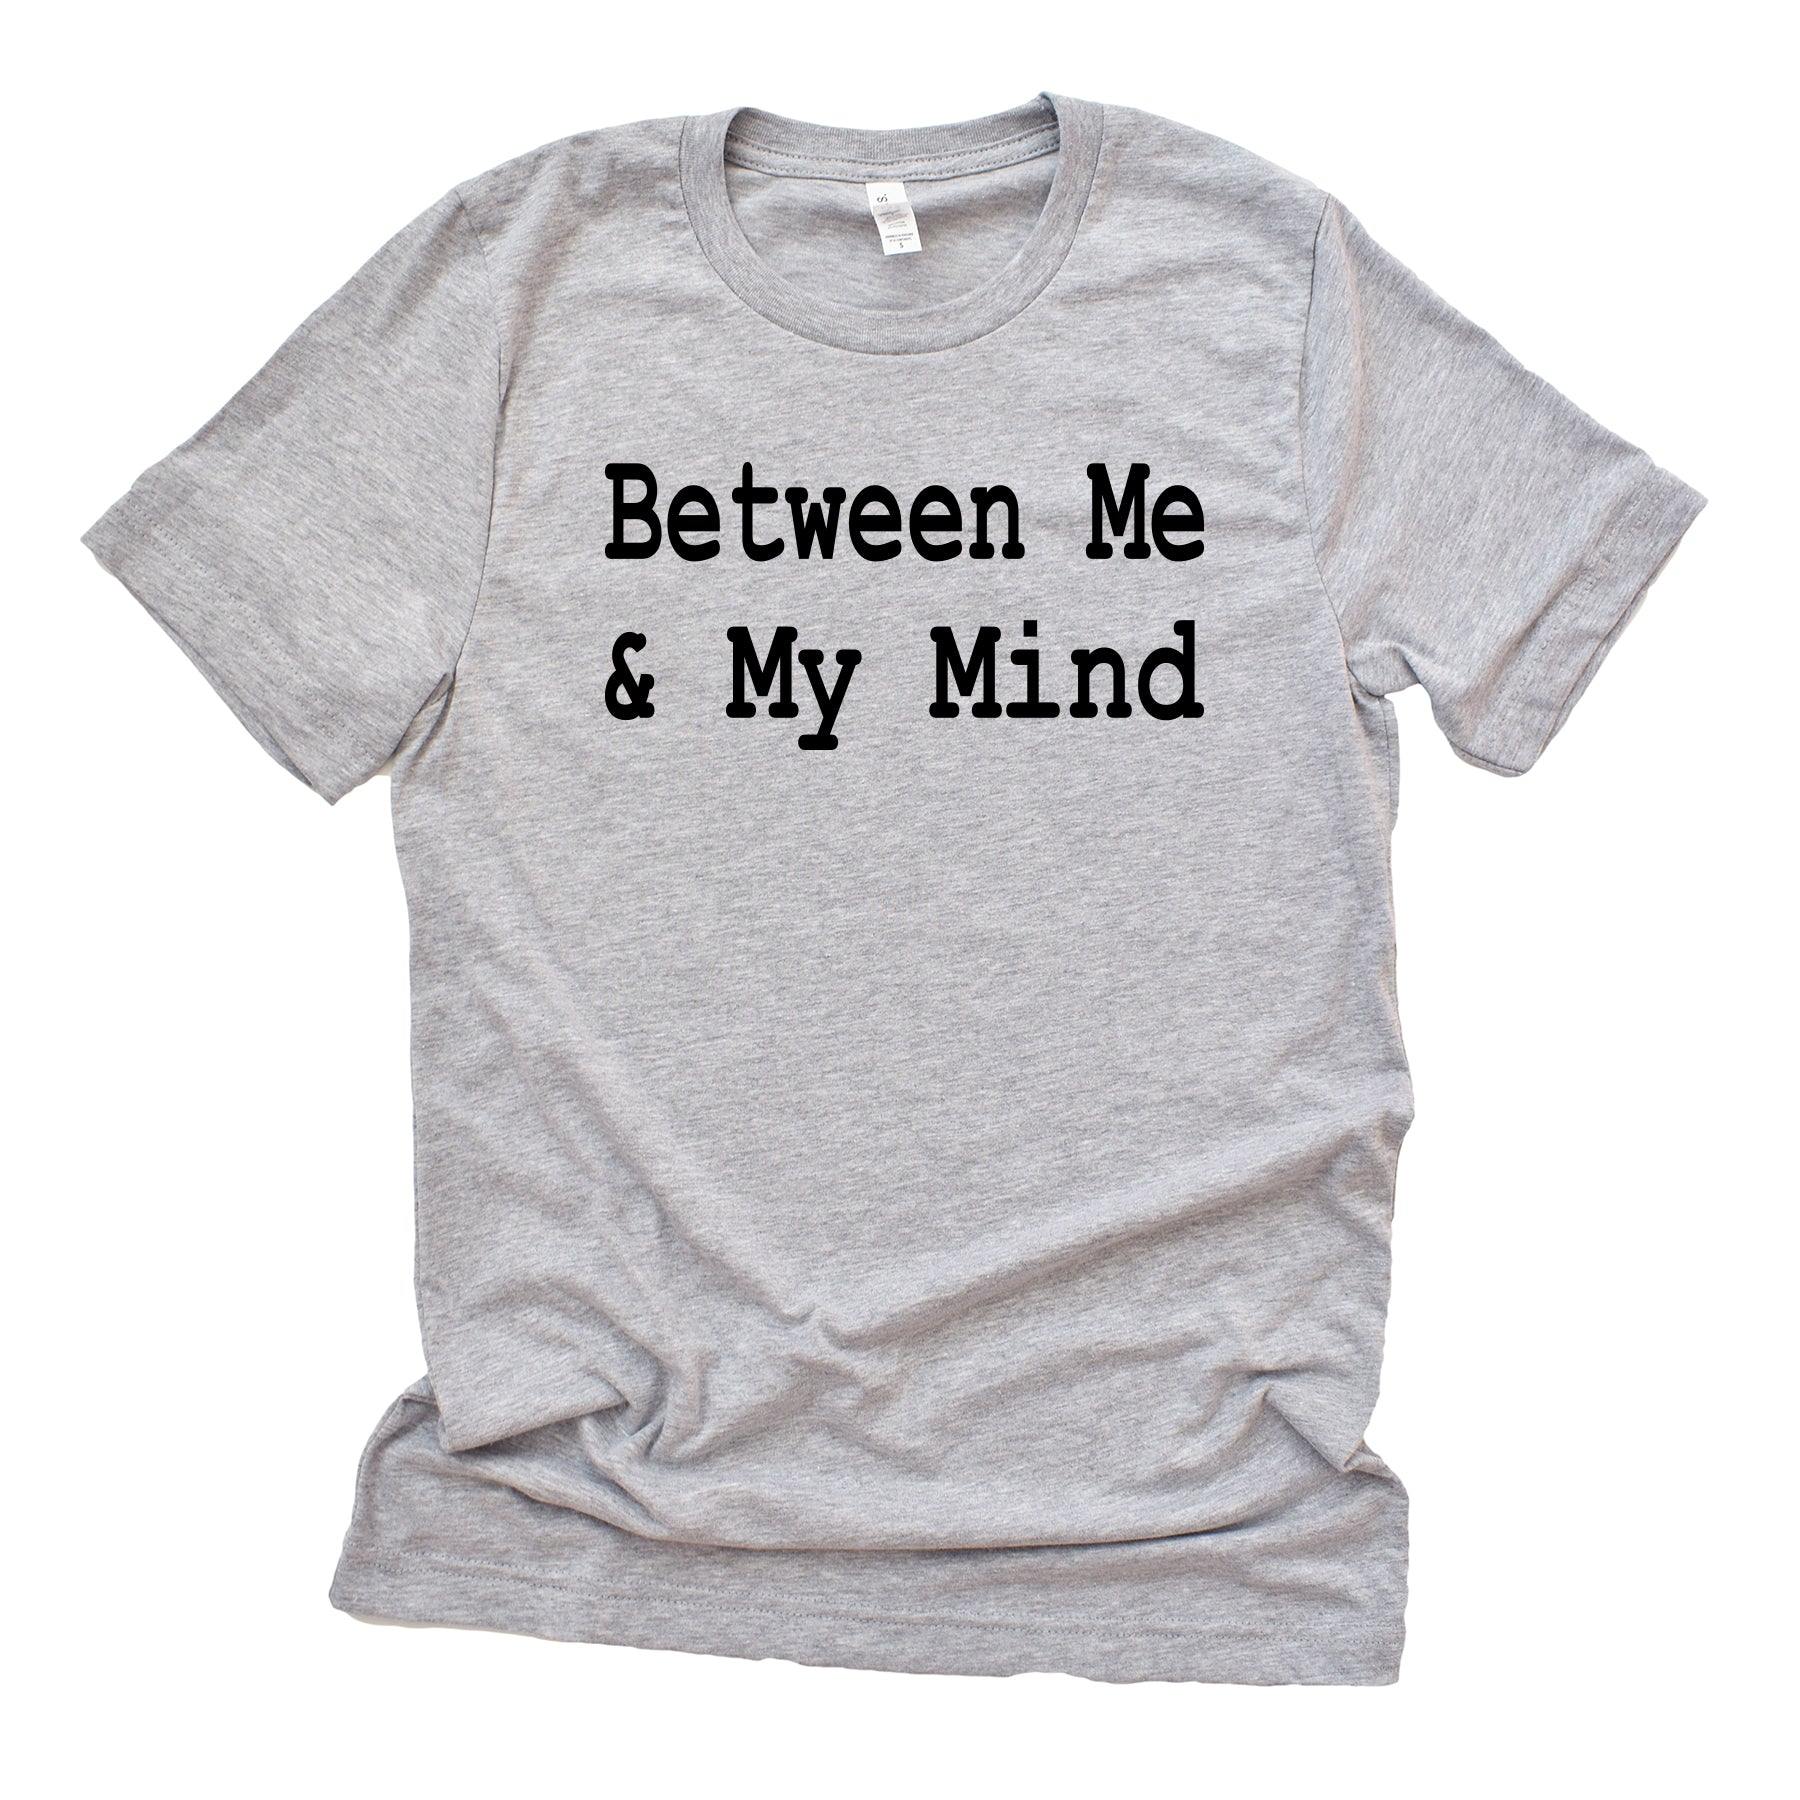 Between Me & My Mind